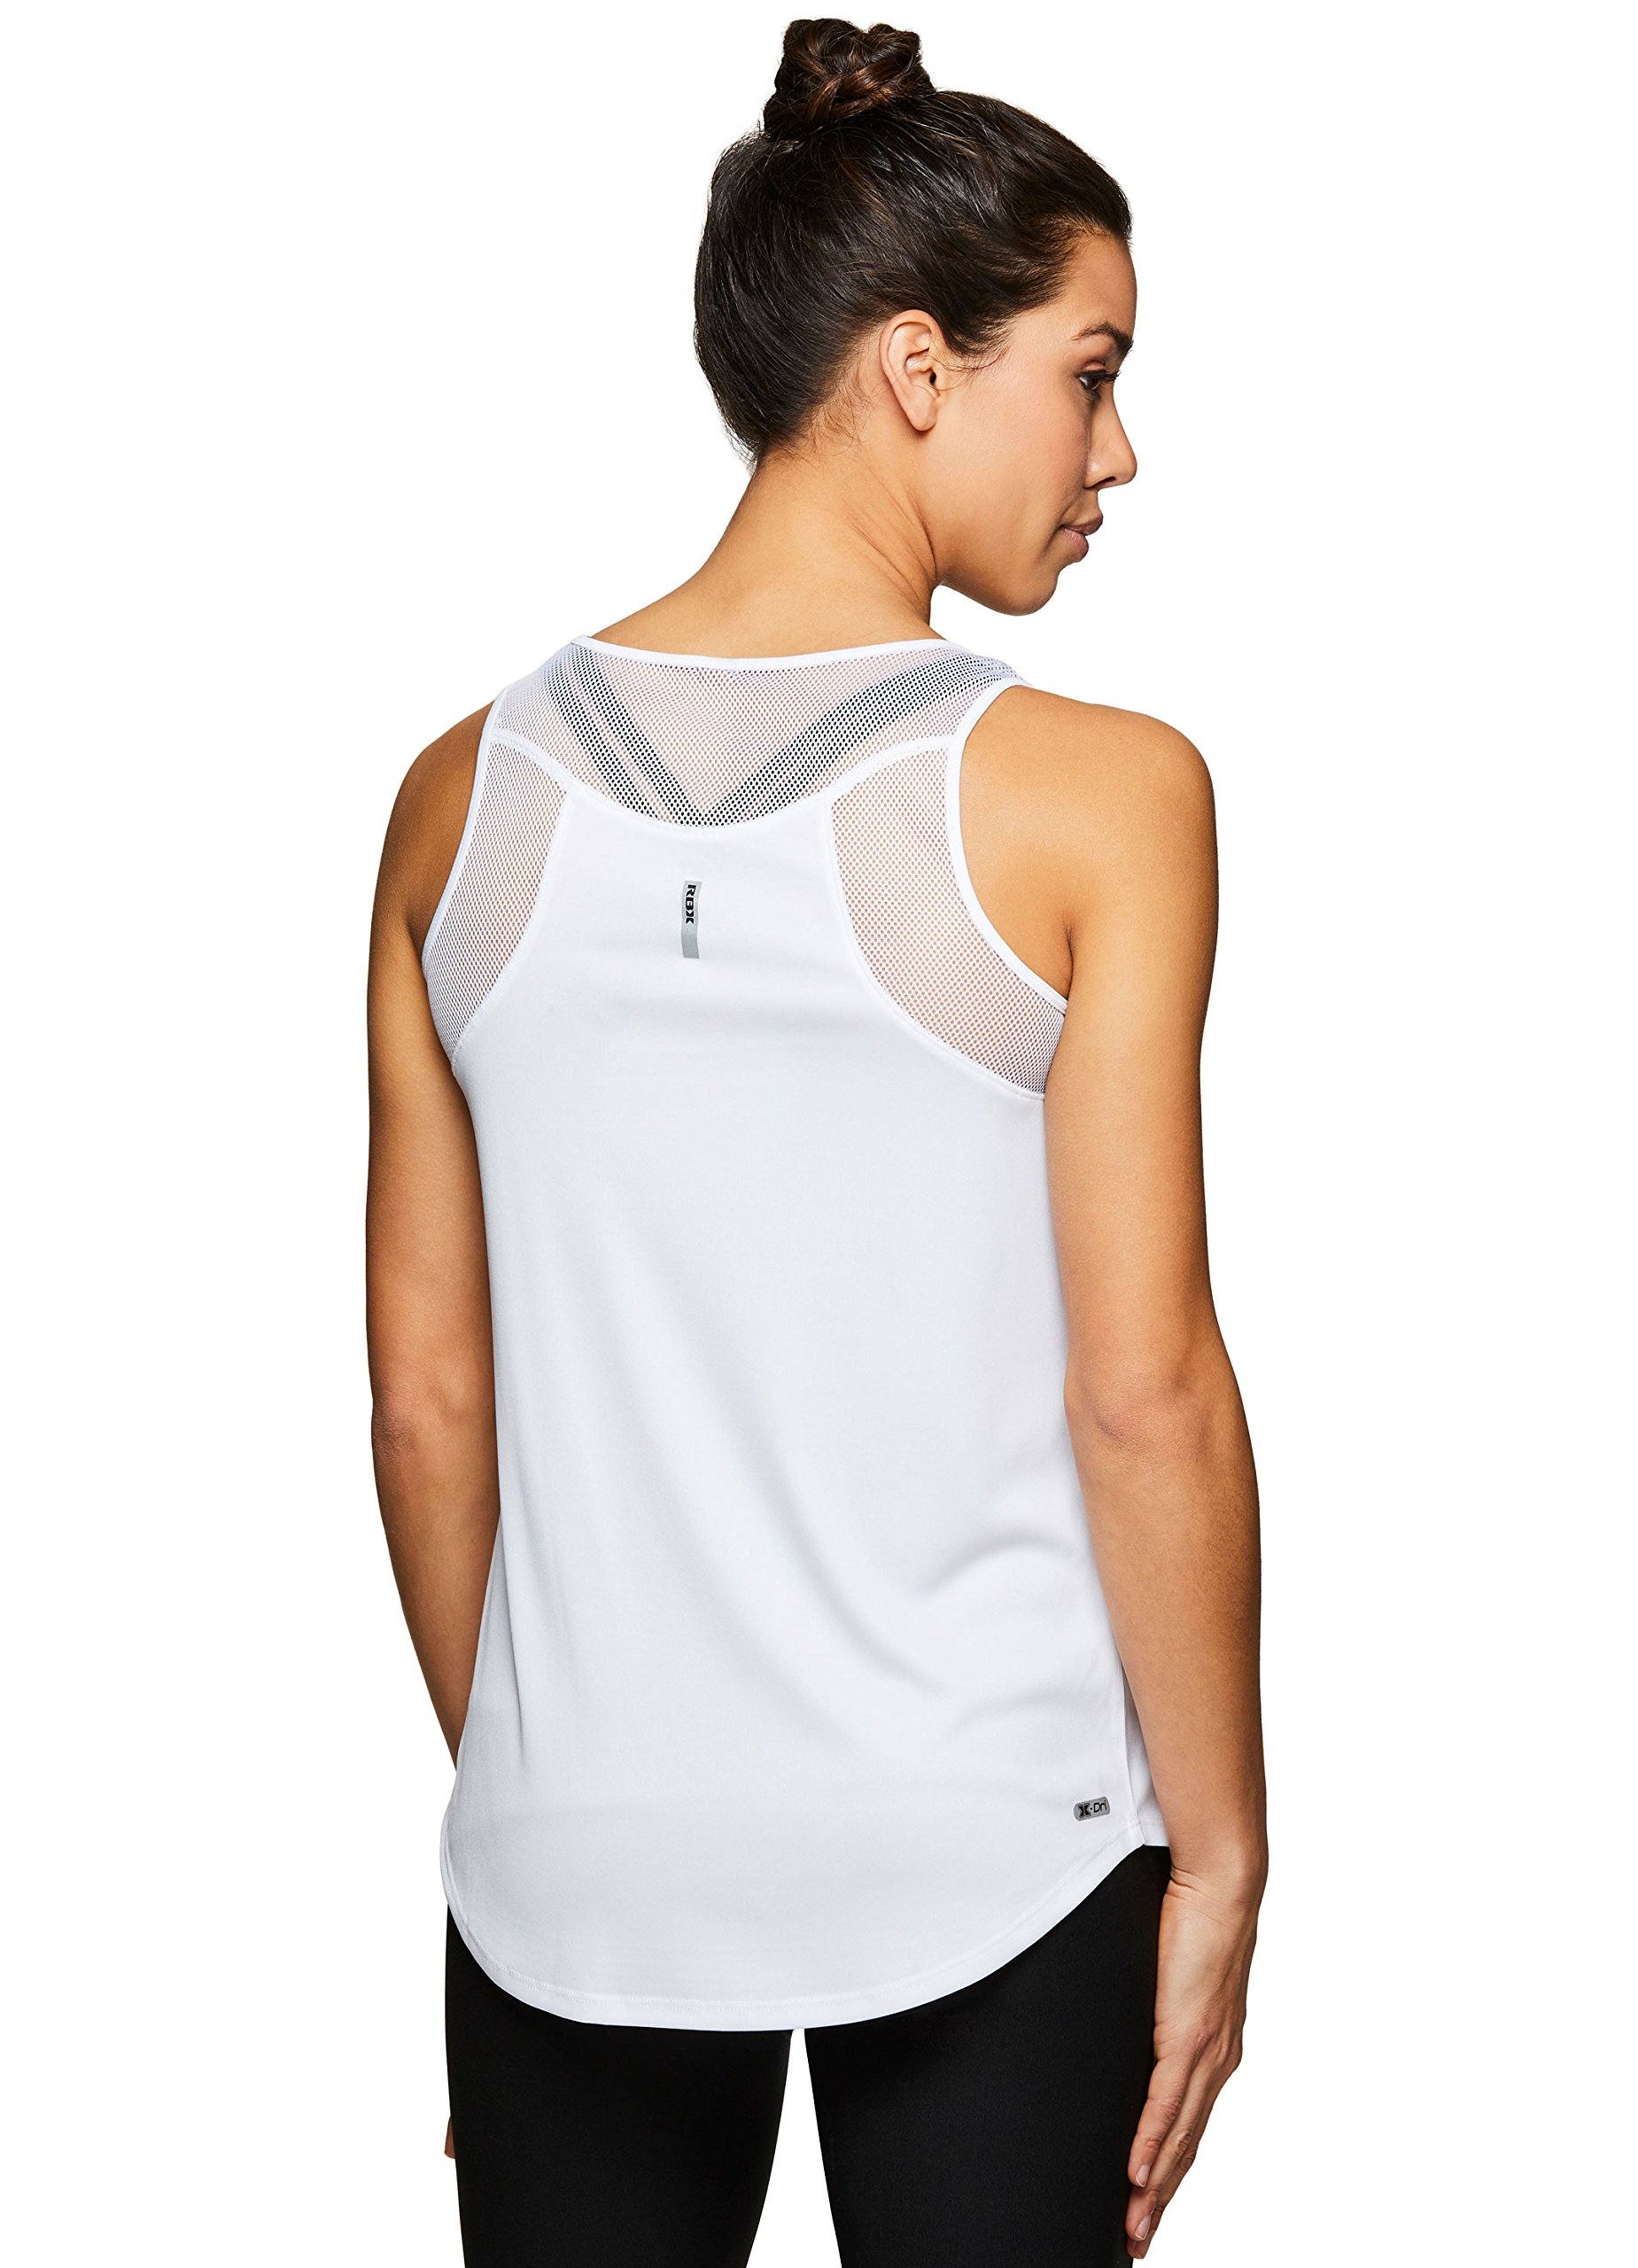 RBX Active Women's Yoga Tank Top with Mesh Yoga White M